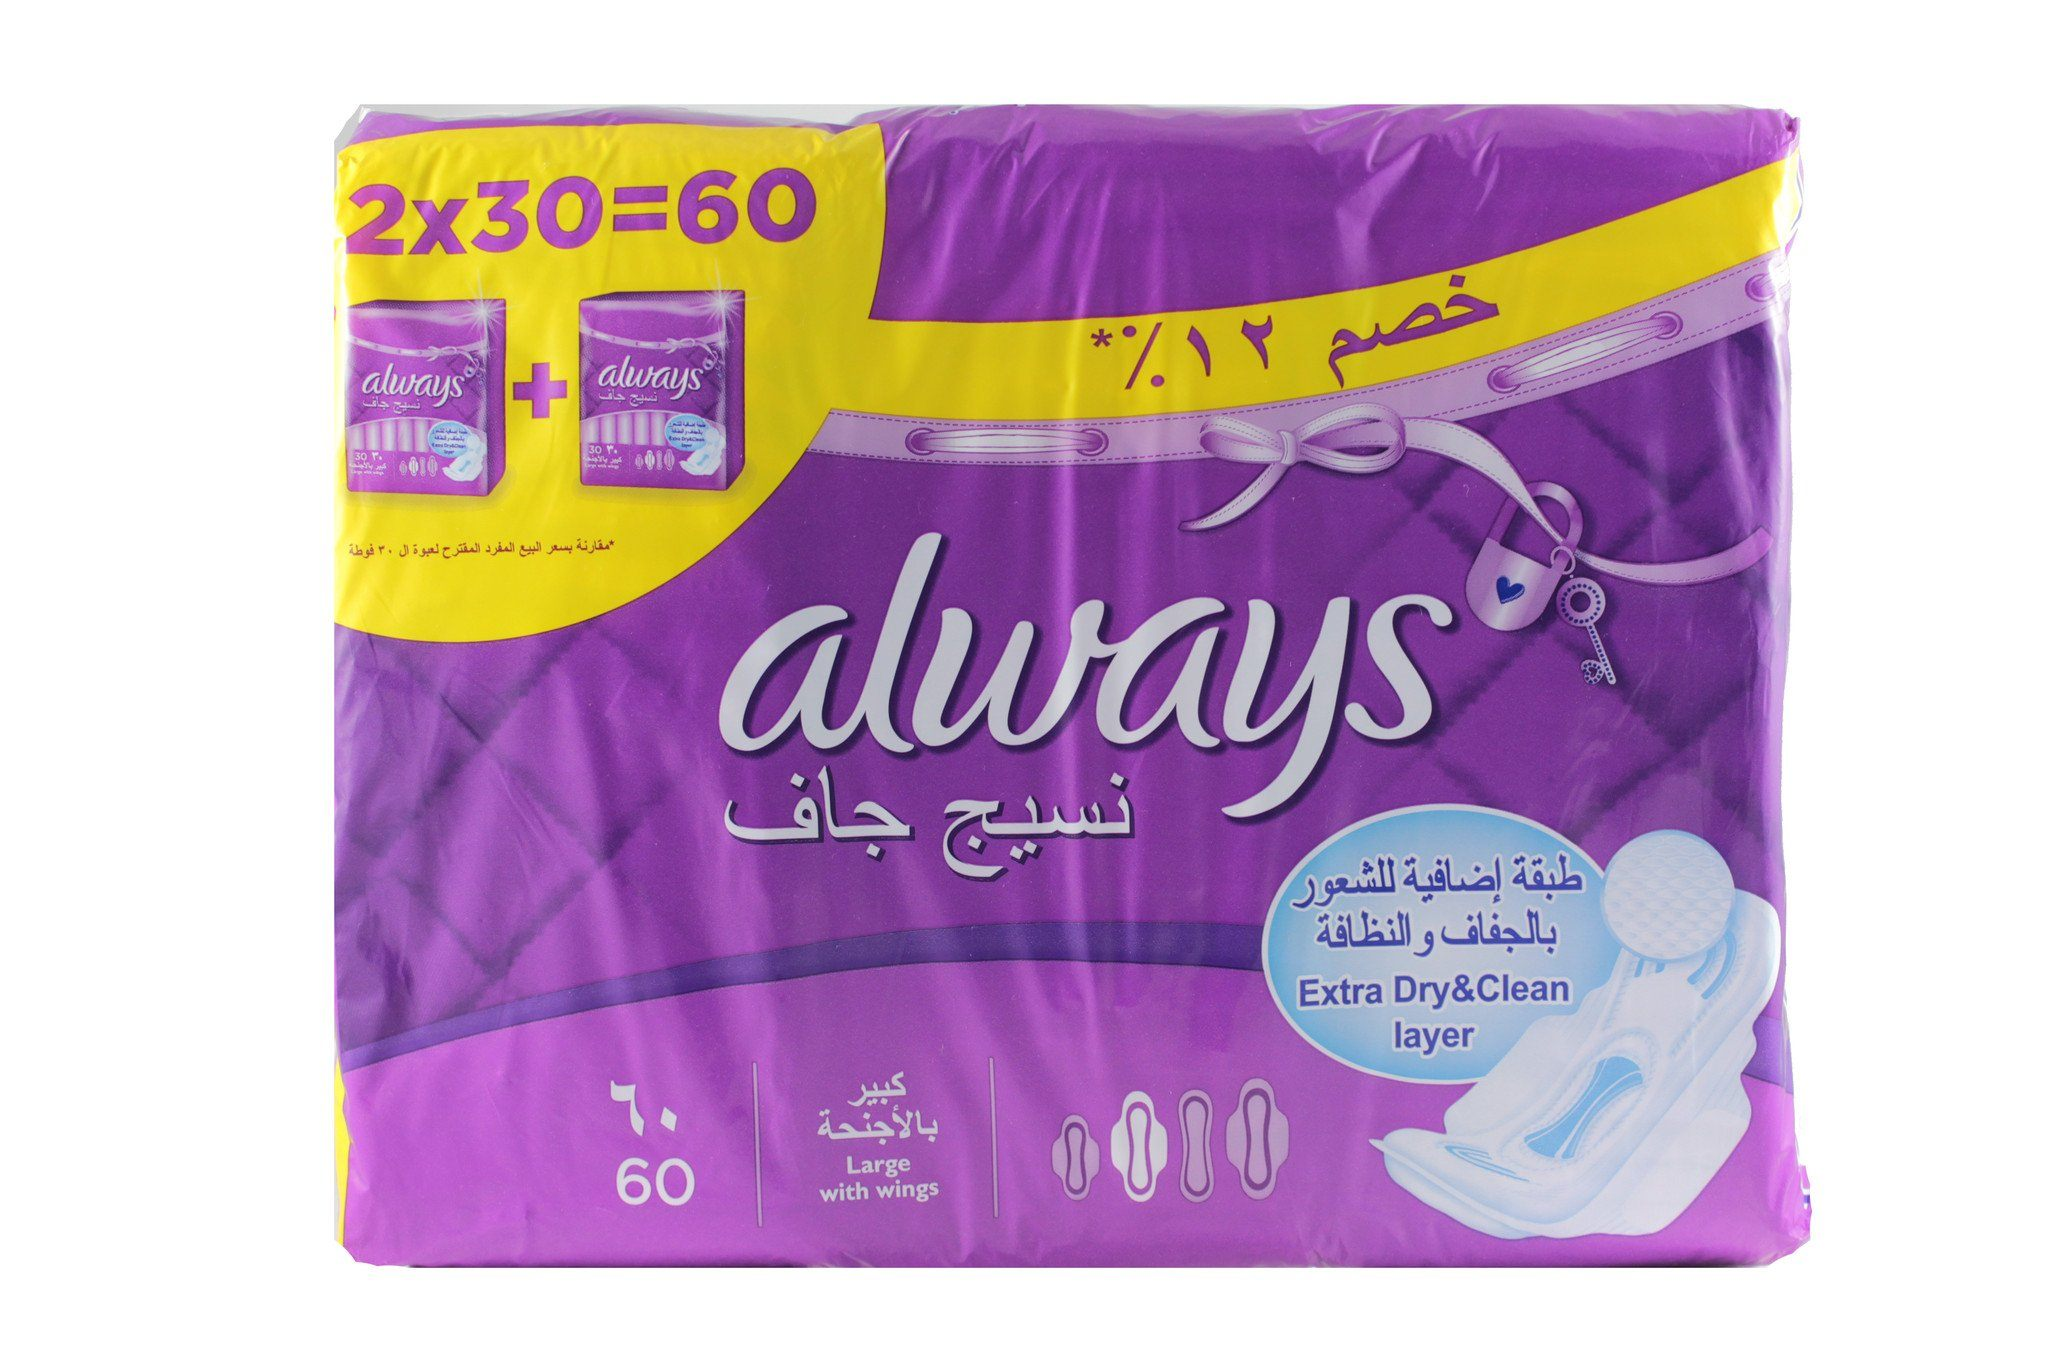 ALWAYS Extra Dry Large with Wings (60 Pads) - Sanadeeg